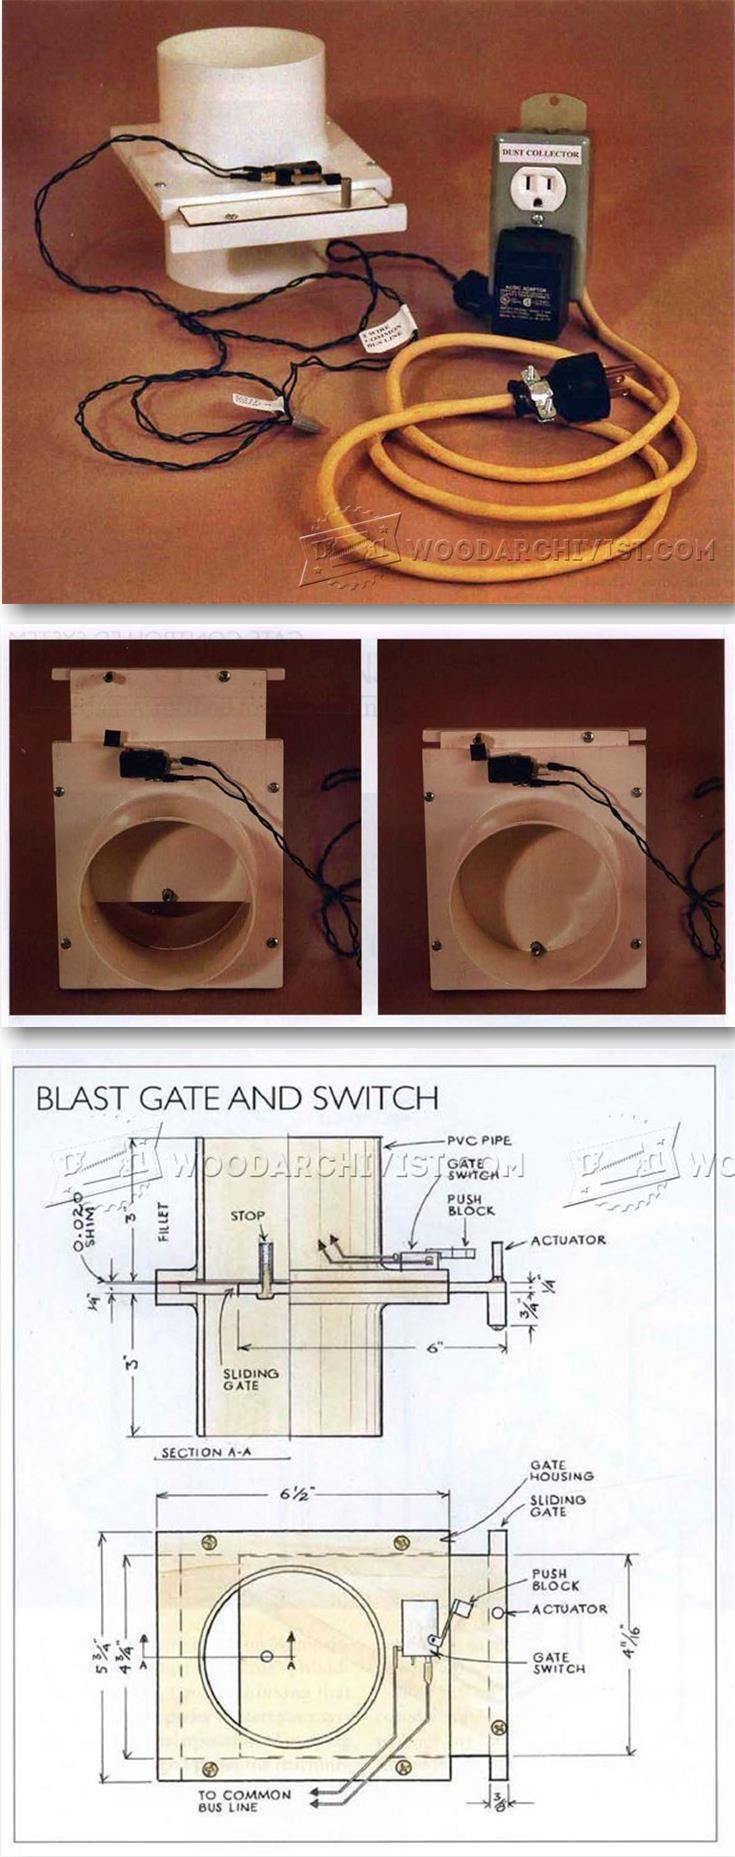 Dust Collection Blast Gate Controls - Dust Collection Tips, Jigs and Fixtures | WoodArchivist.com